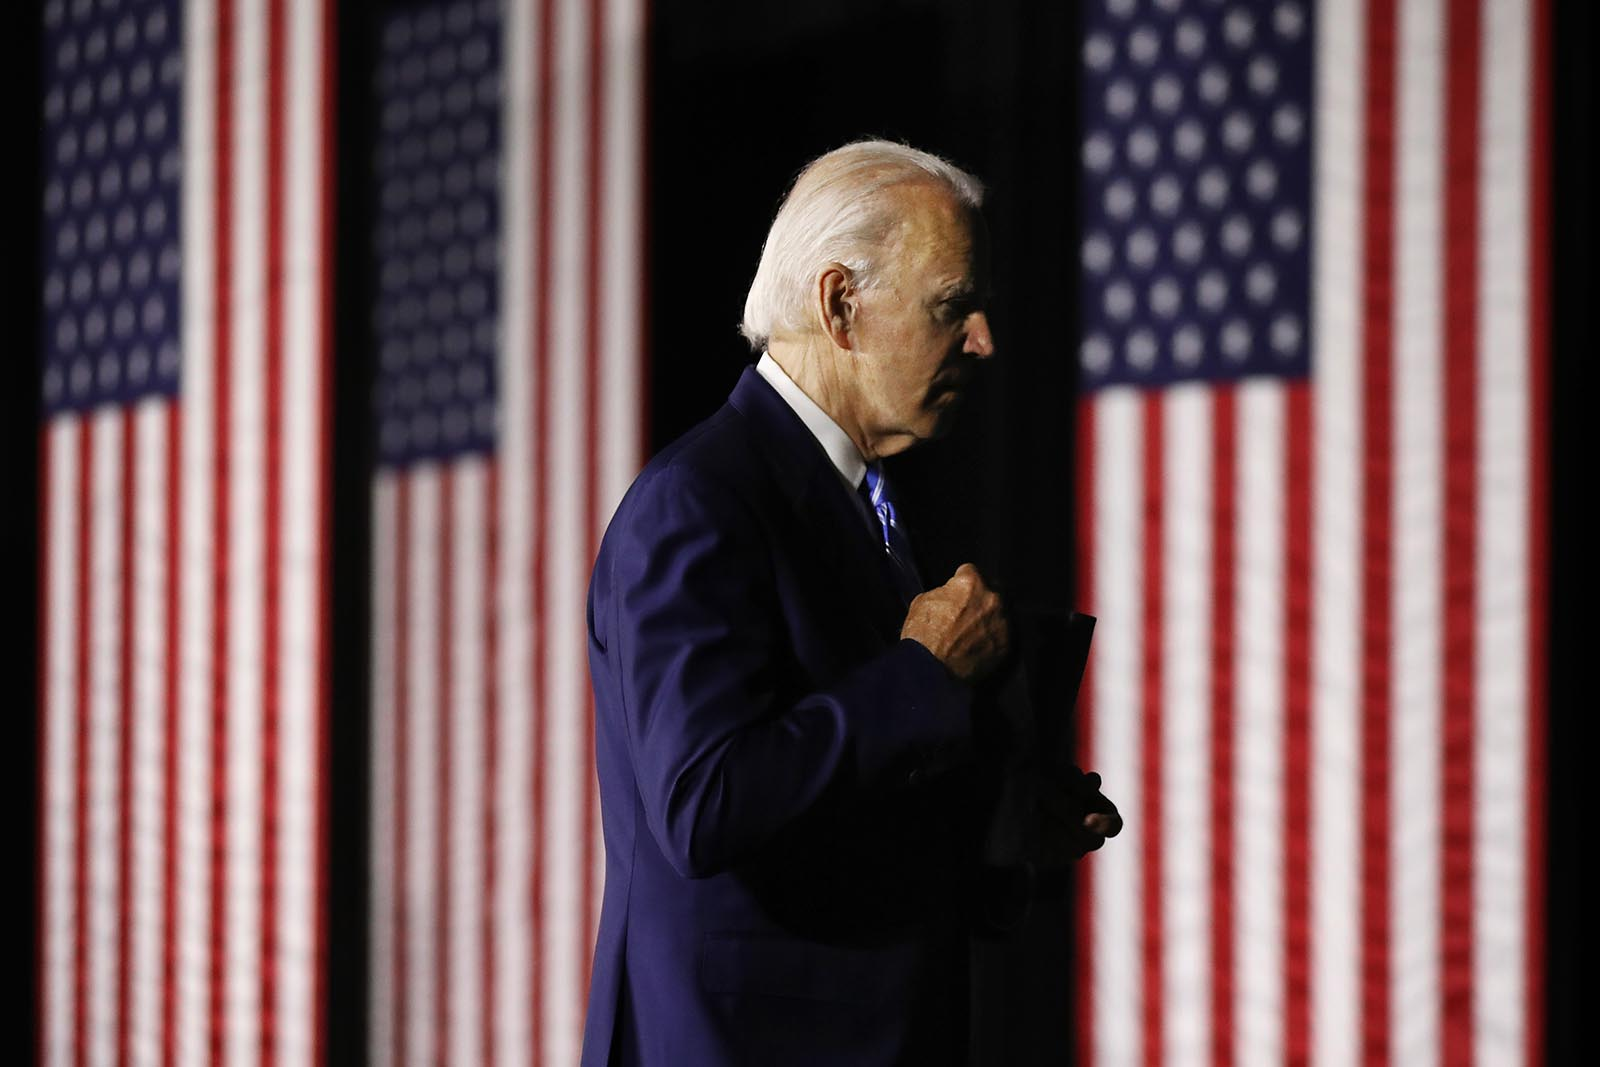 Democratic presidential candidate former Vice President Joe Biden leaves after speaking at the Chase Center July 14, in Wilmington, Delaware.